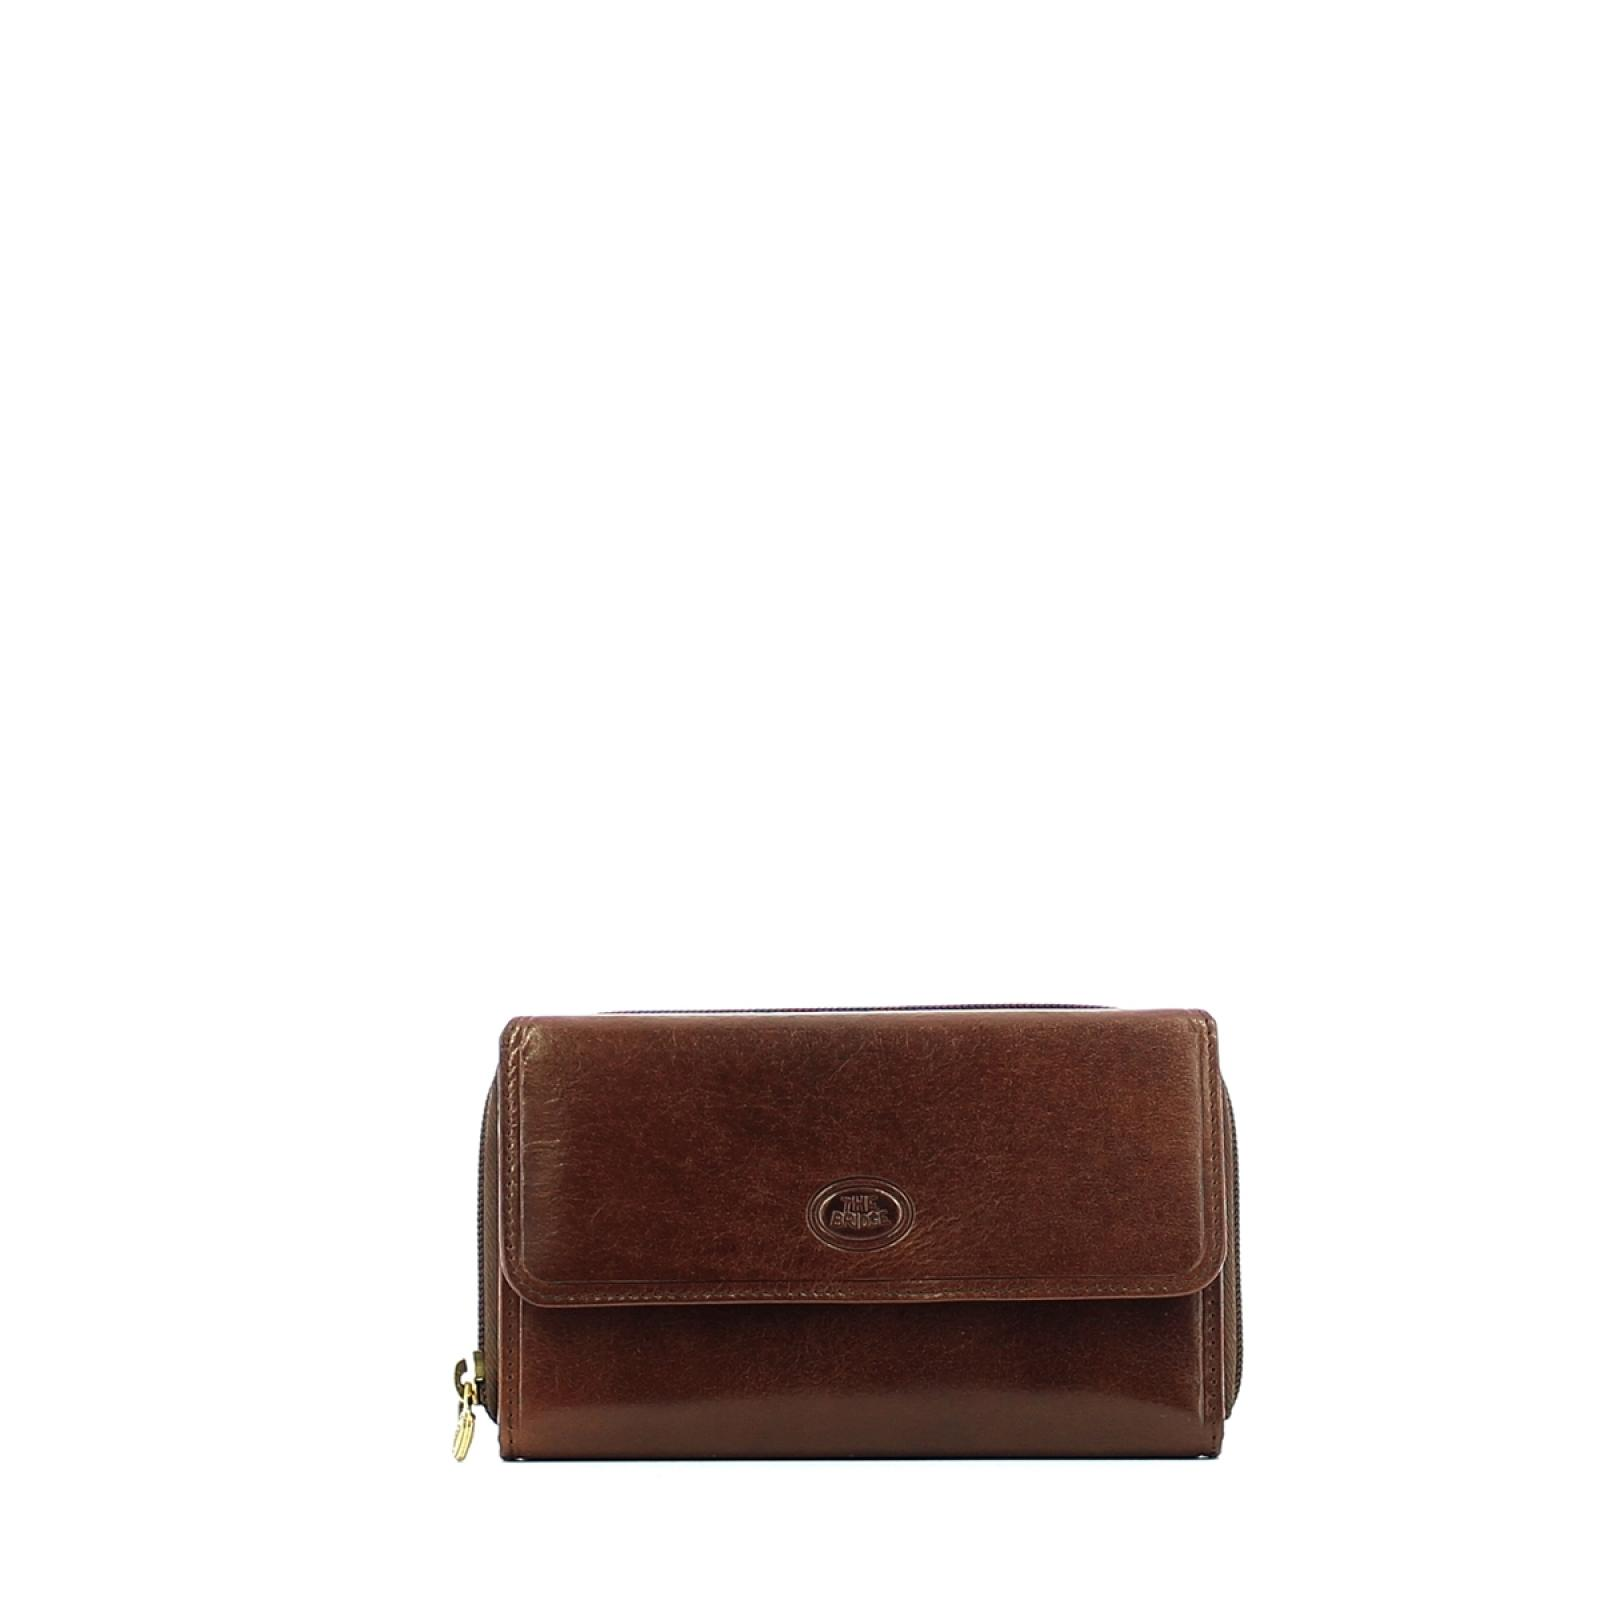 Woman Wallet Story-CUOIO-UN